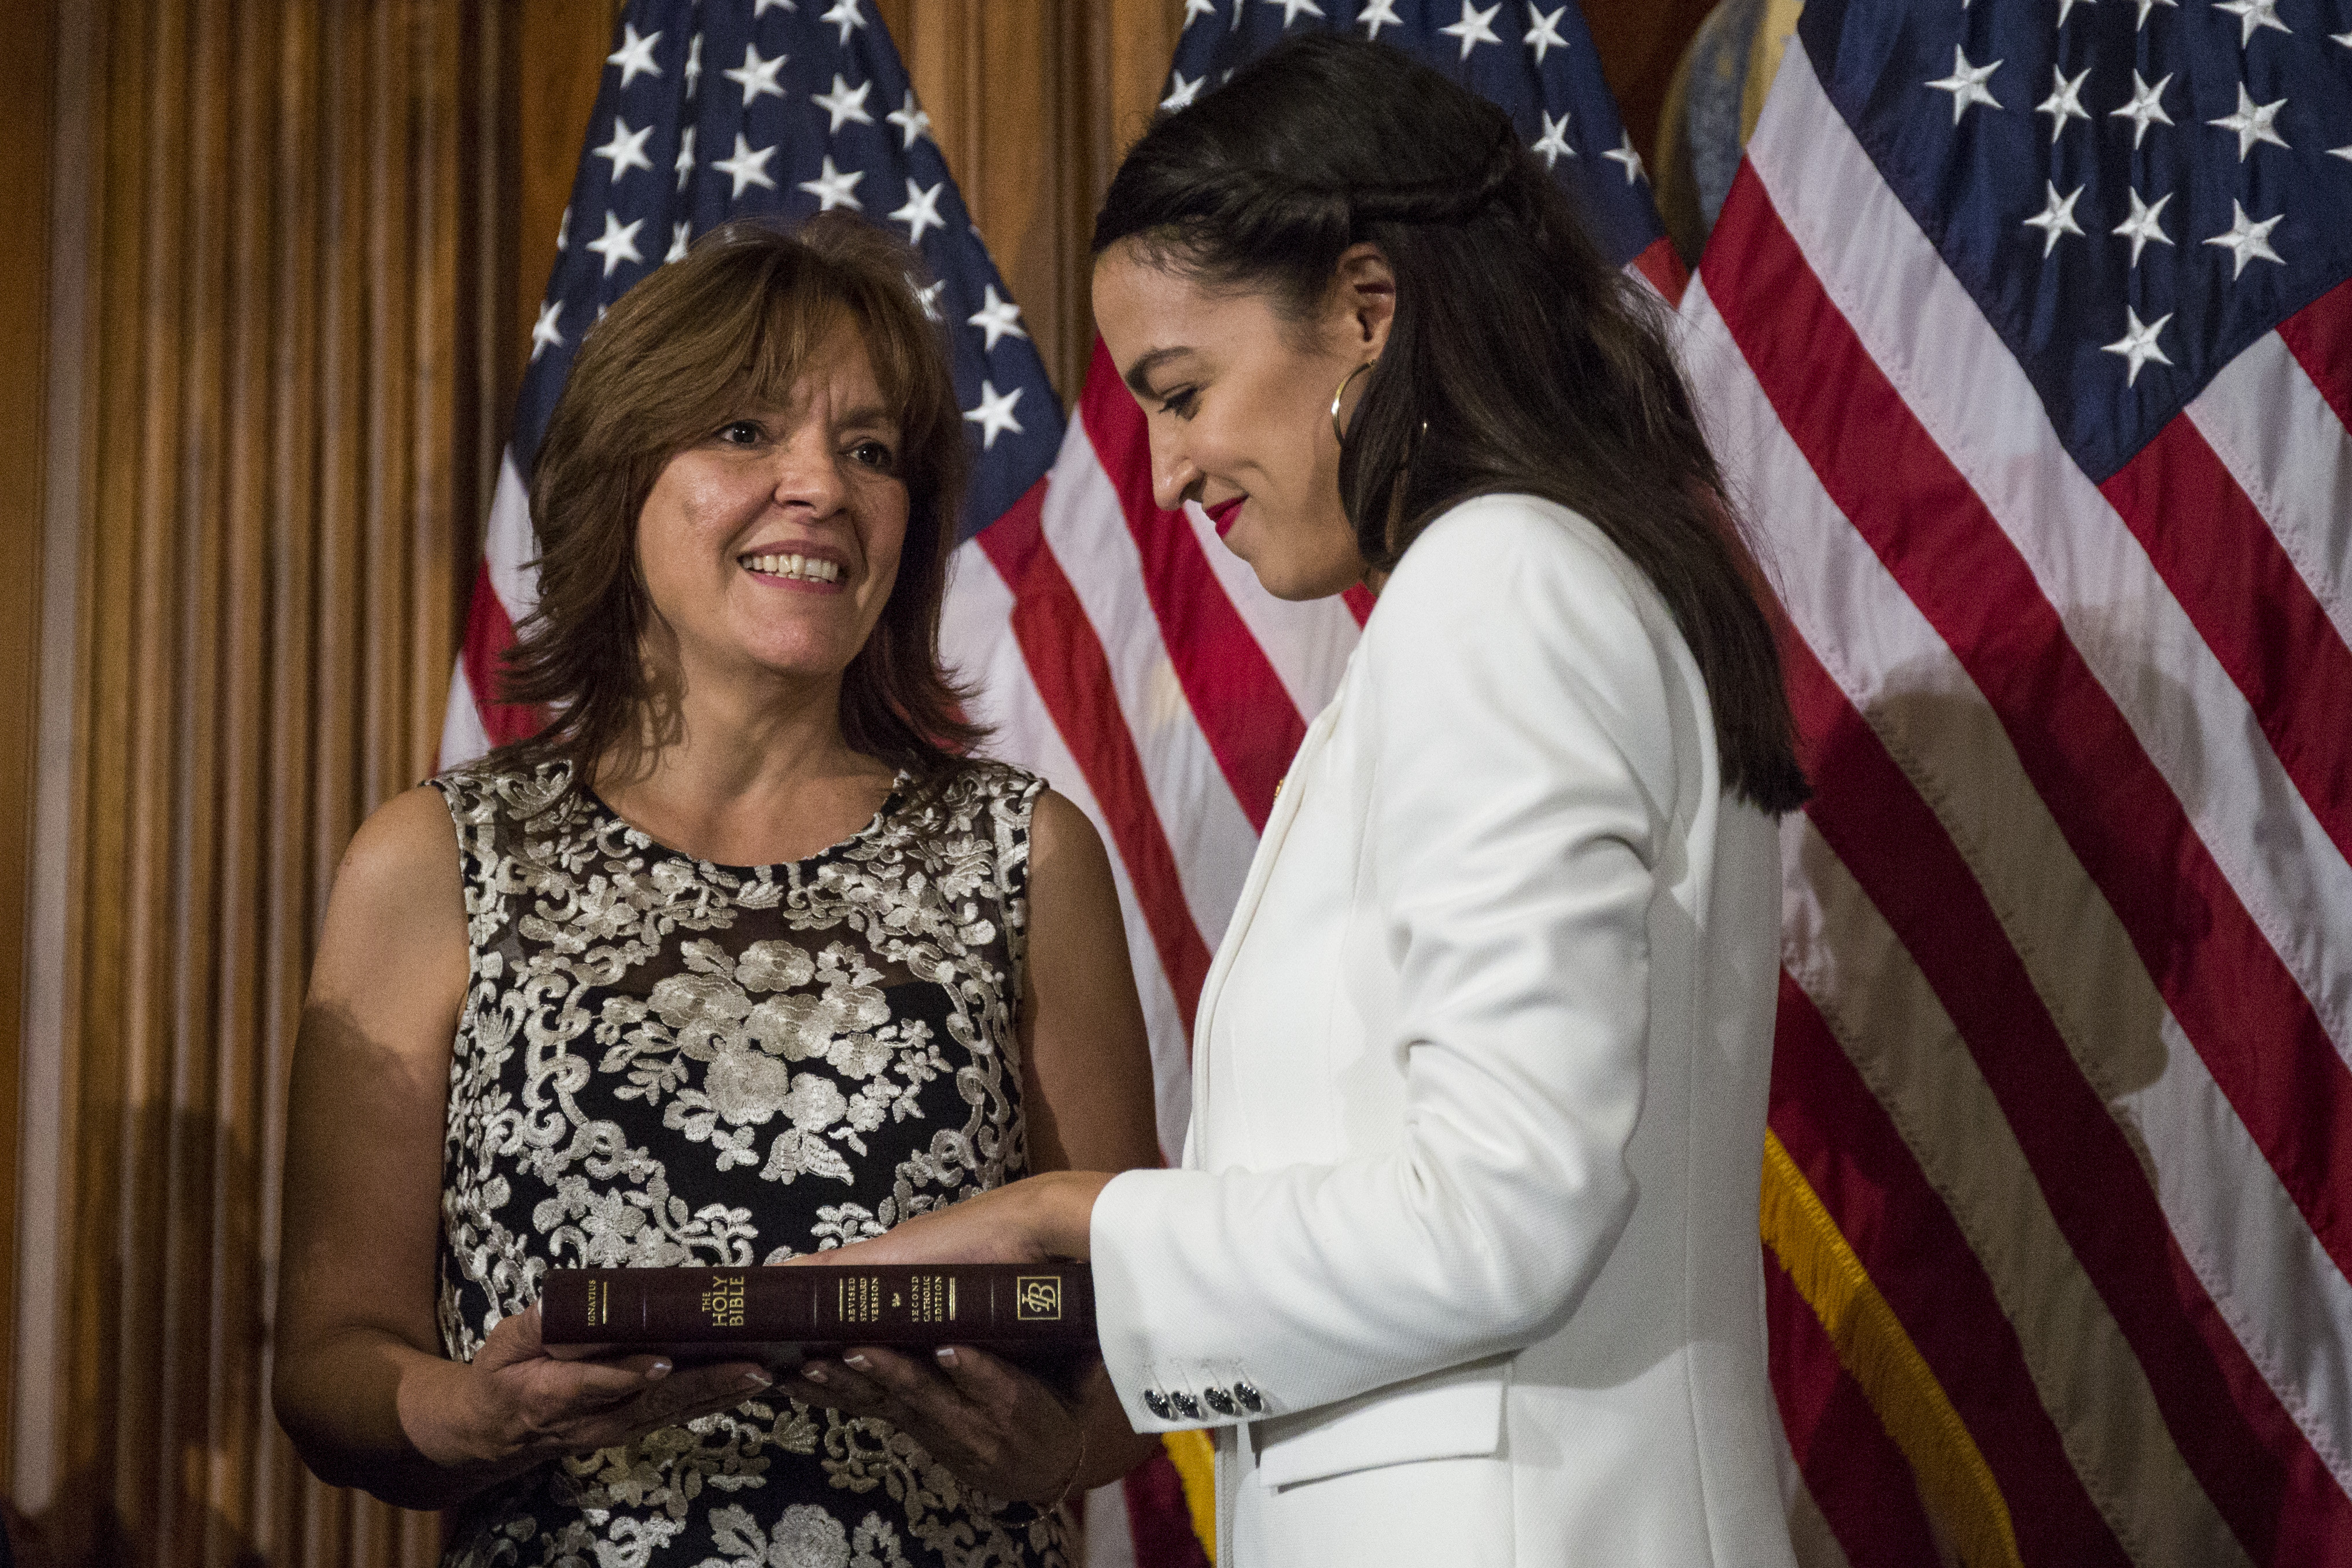 Rep. Alexandria Ocasio-Cortez (D-NY), takes part in a ceremonial mock swearing-in ceremony with House Speaker Nancy Pelosi on Capitol Hill on January 3, 2019 in Washington, DC. (Getty Images)